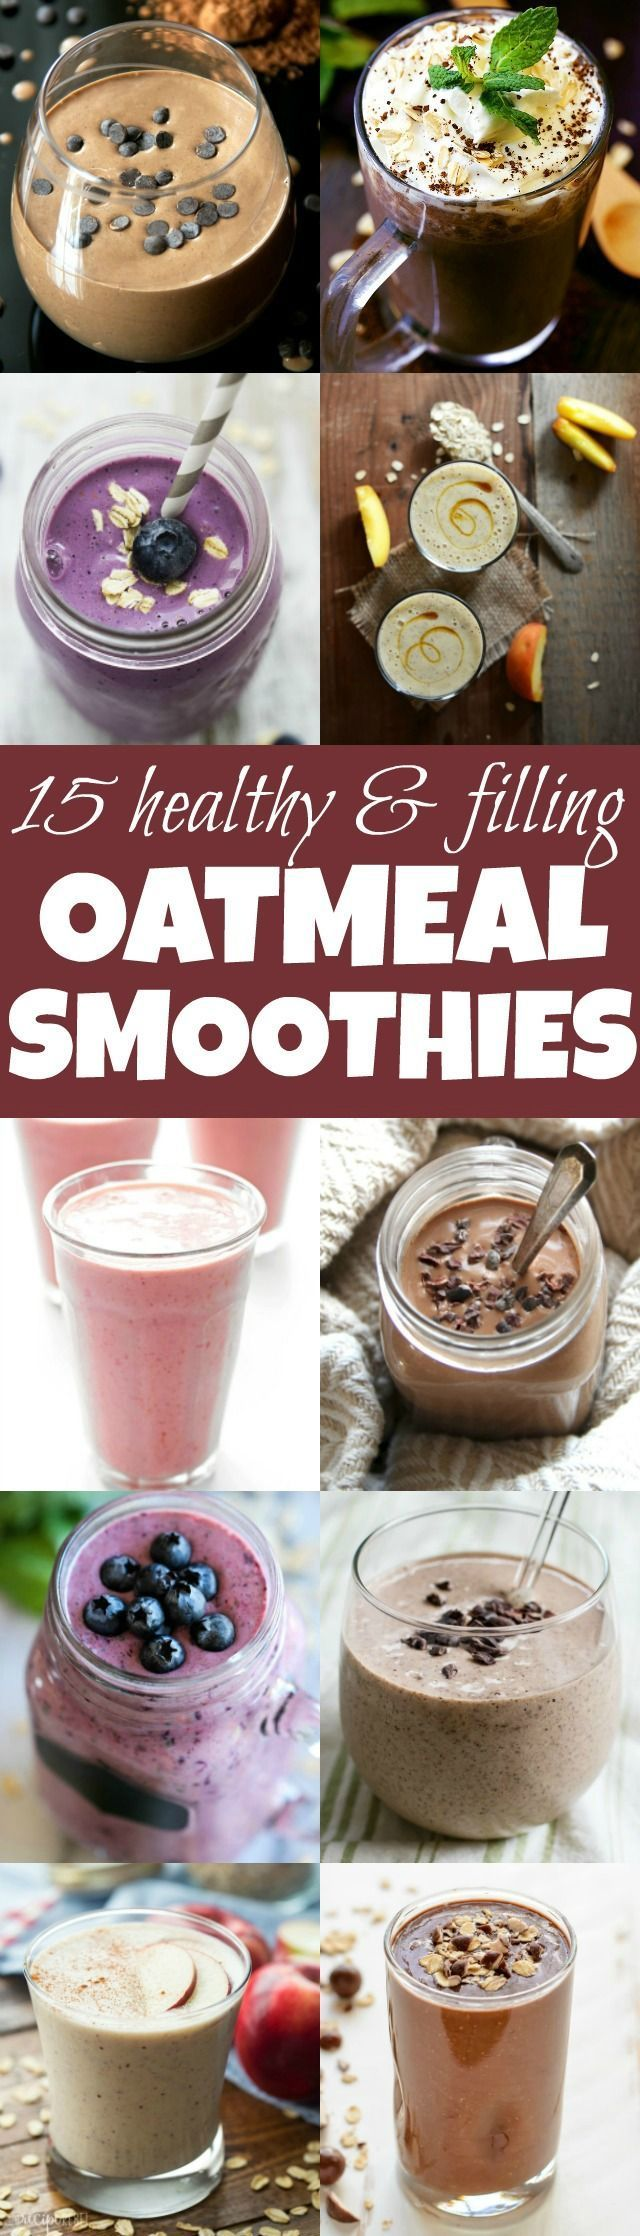 Add some extra staying power and nutrition to your smoothies with these healthy oatmeal smoothie recipes! #smoothie #oatmeal